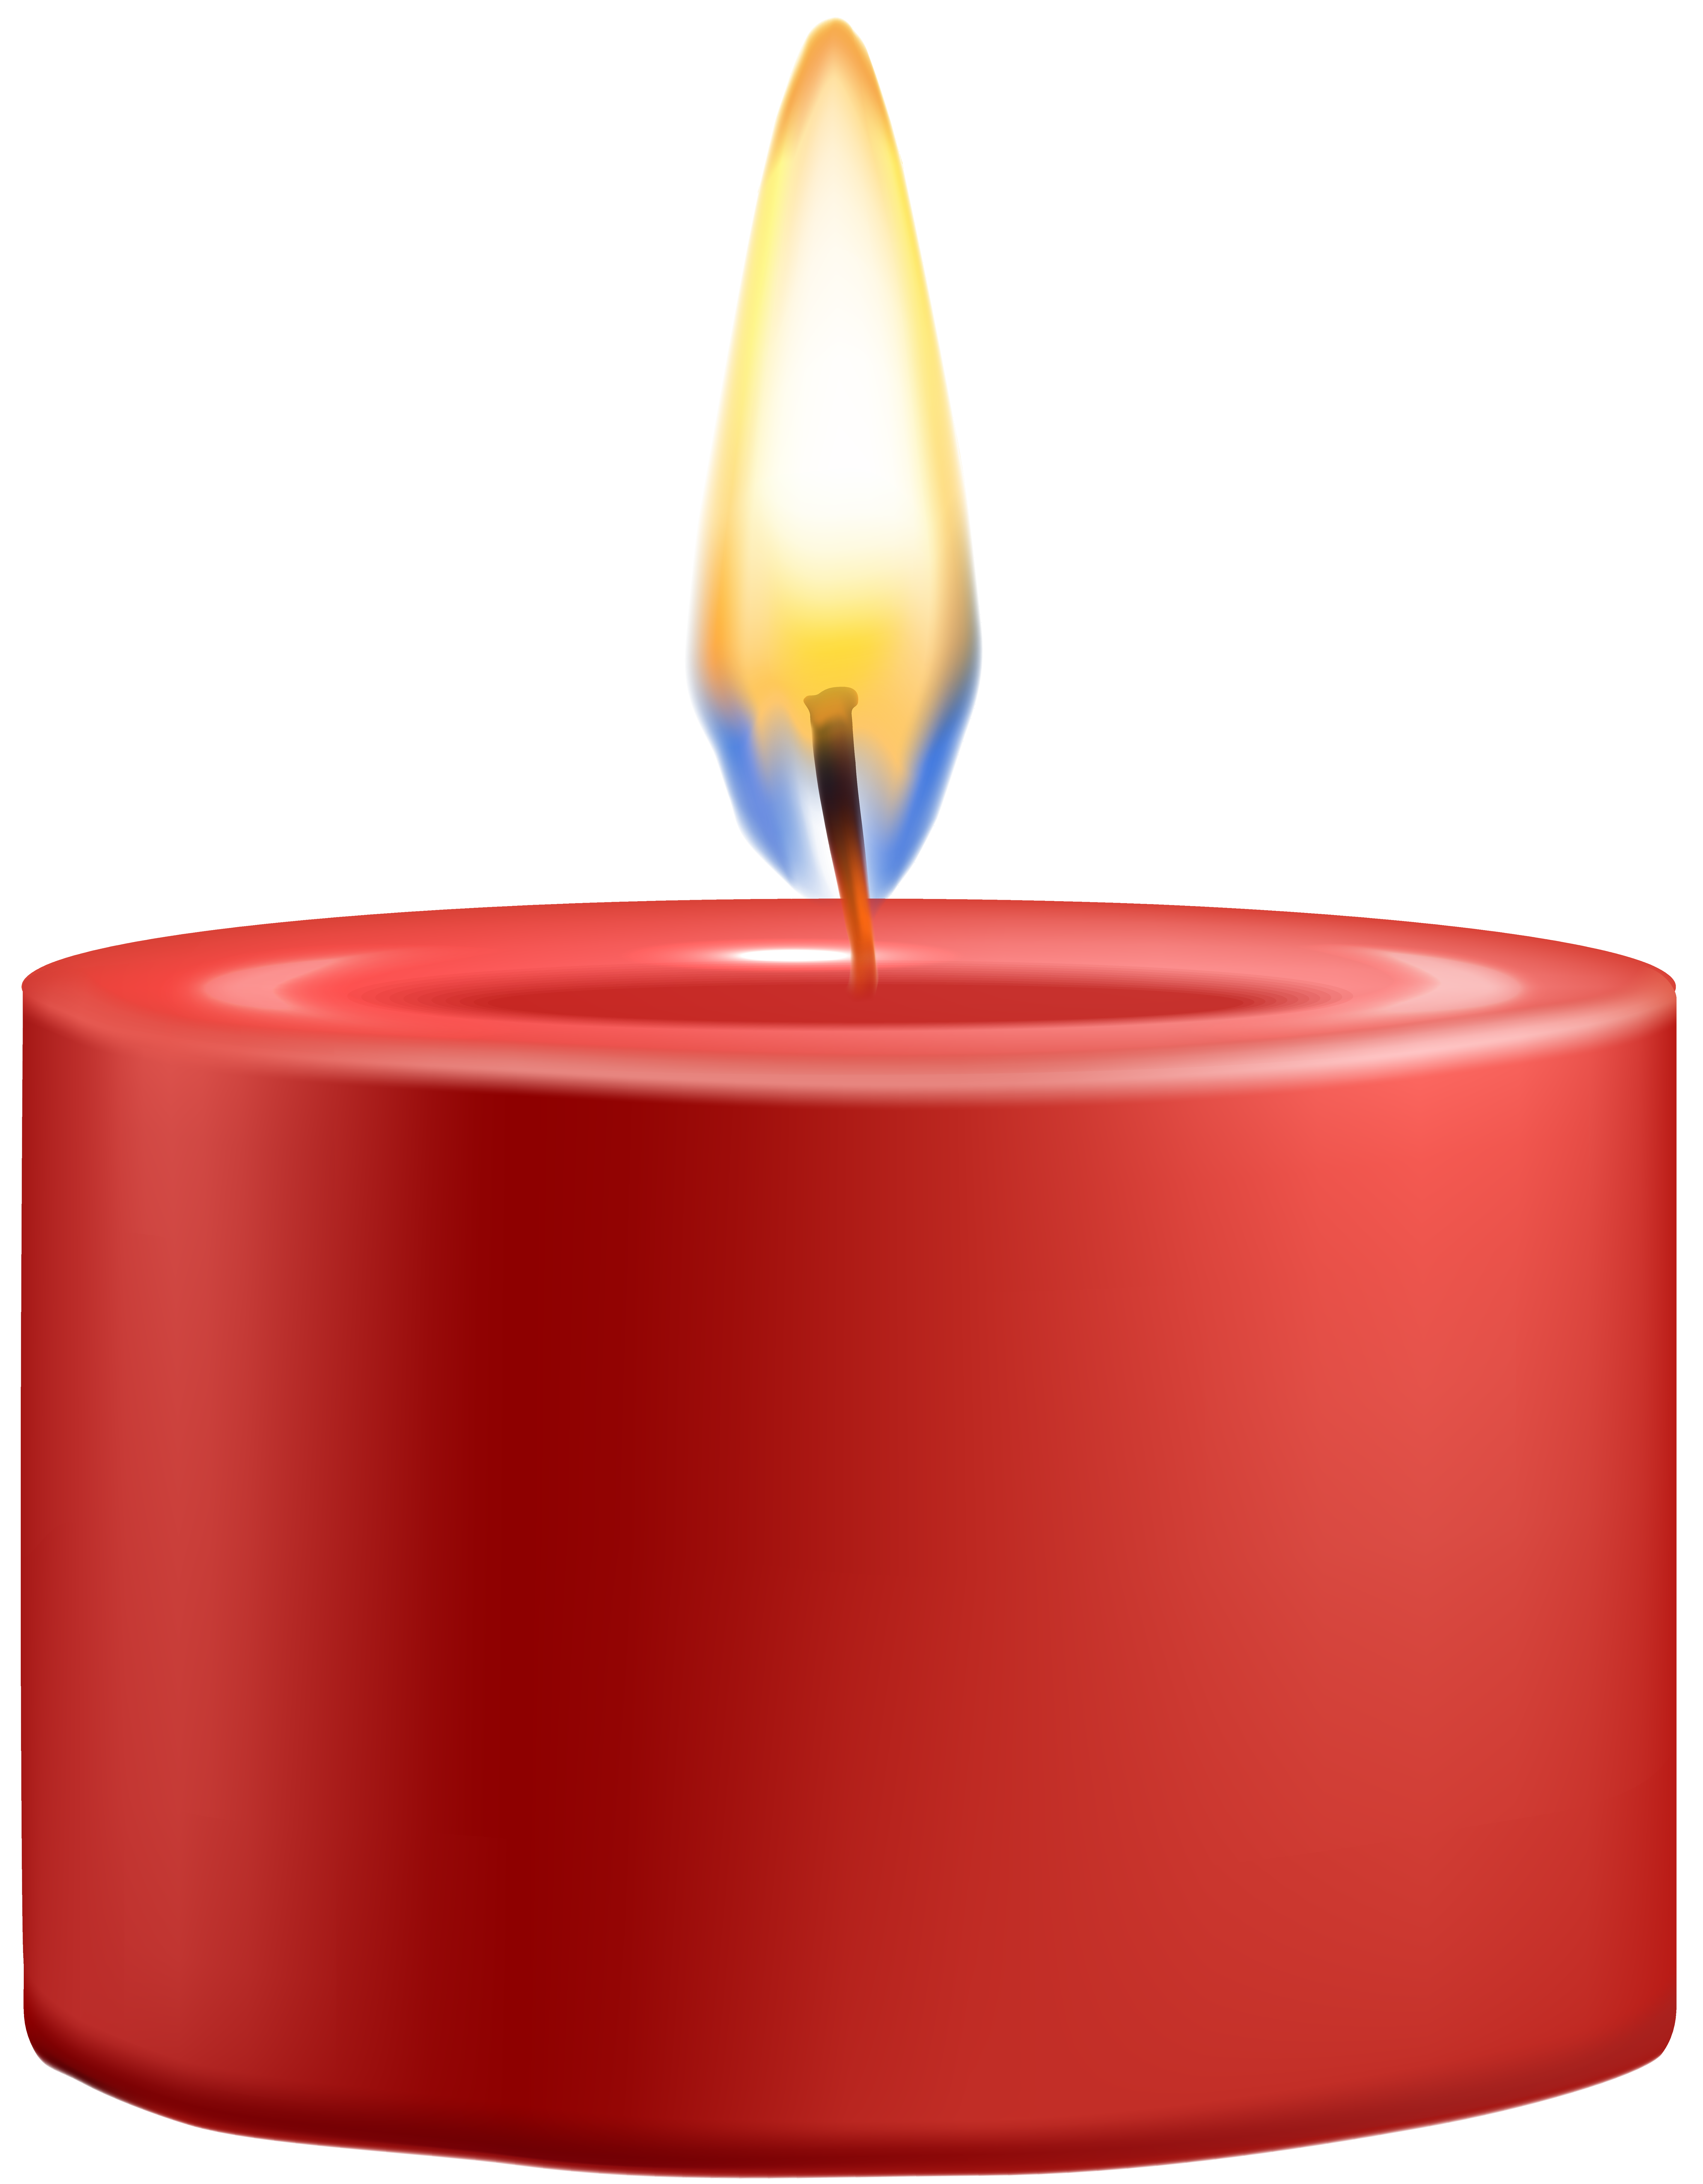 Clipart books candle. Red png clip art